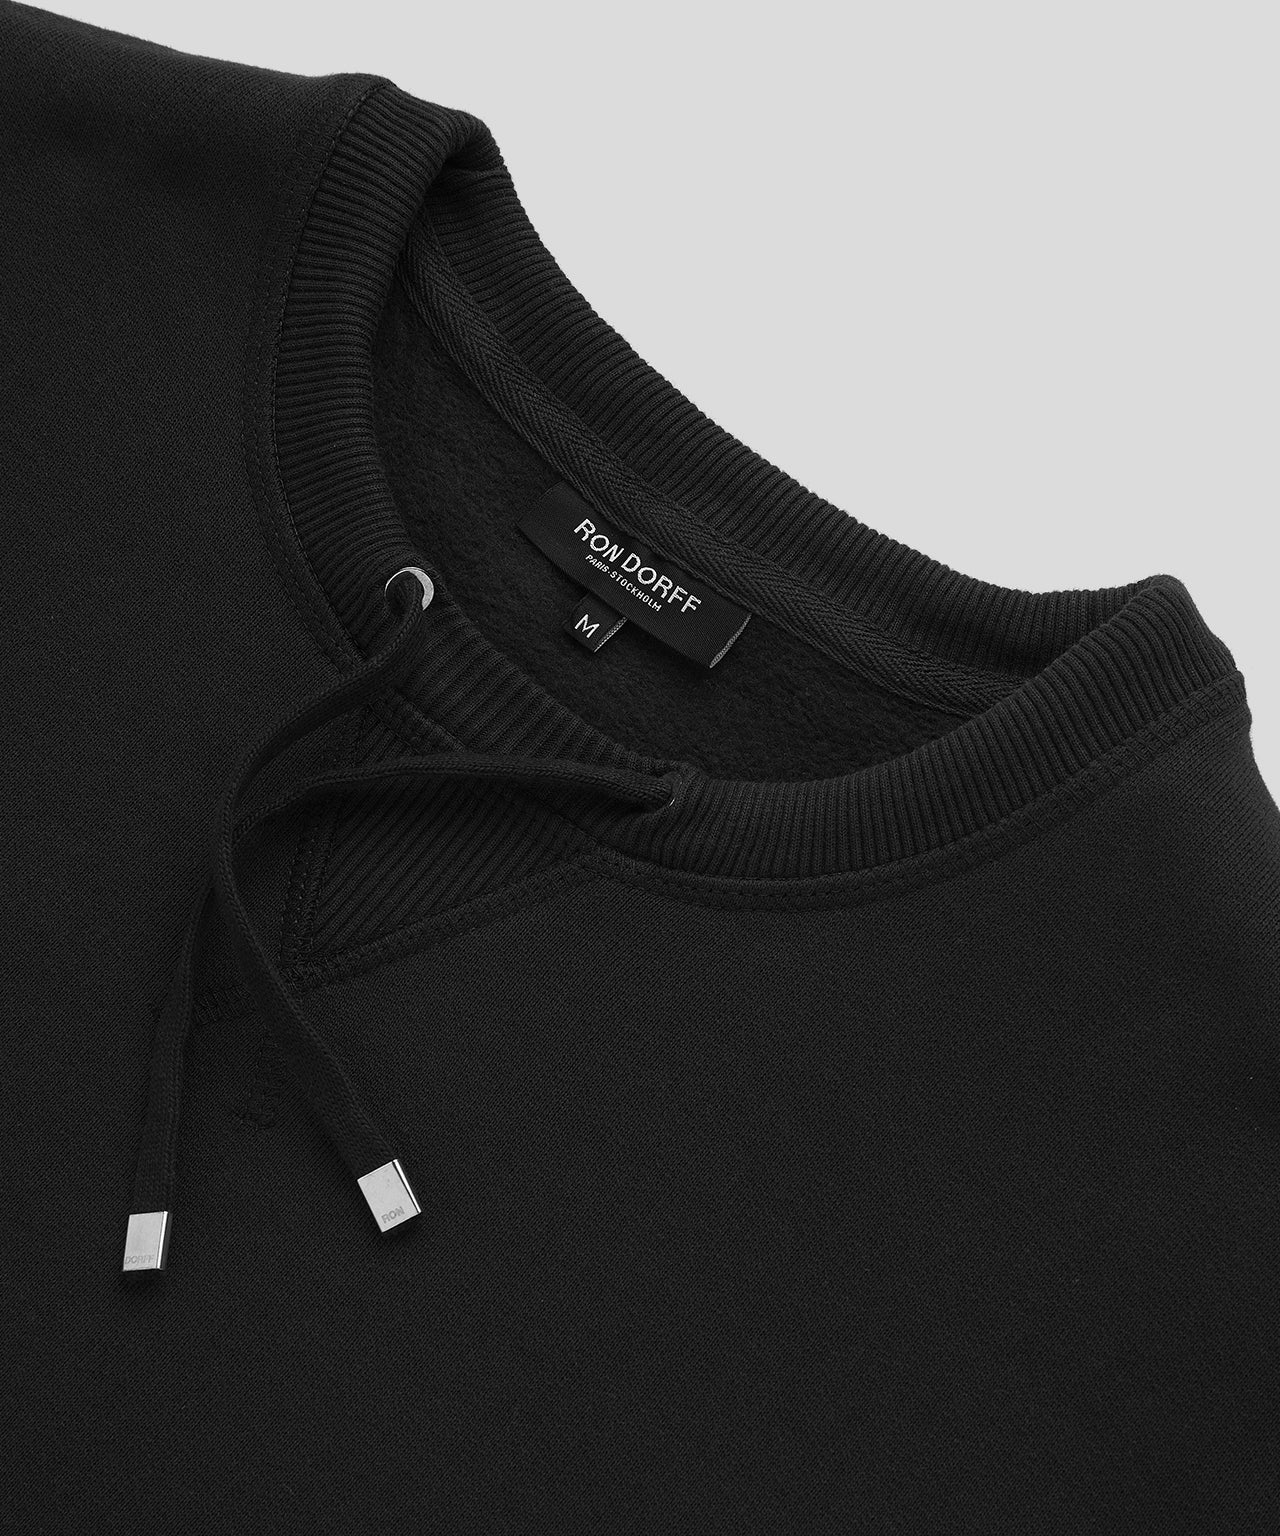 Sweatshirt Drawstring - black